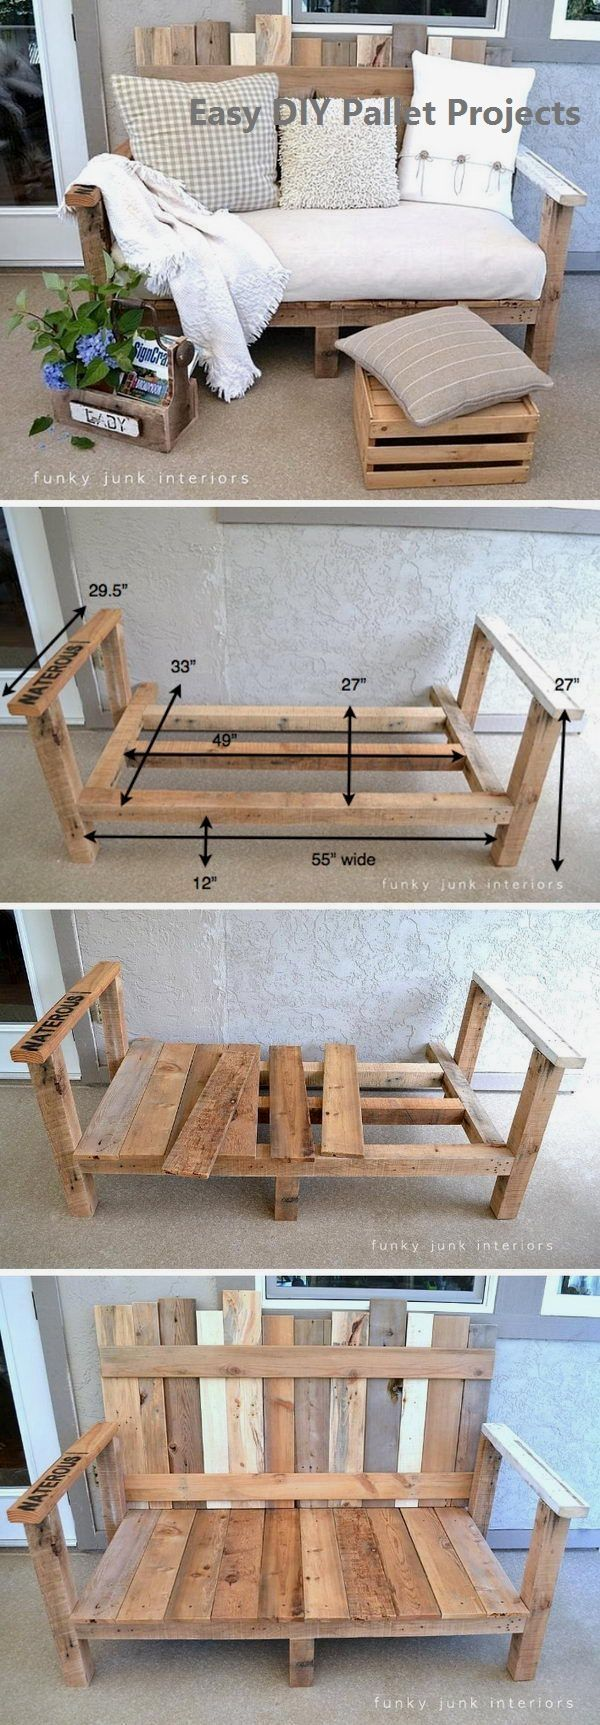 Photo of DIY ideas Using Wood Pallets#diy #ideas #pallets #wood